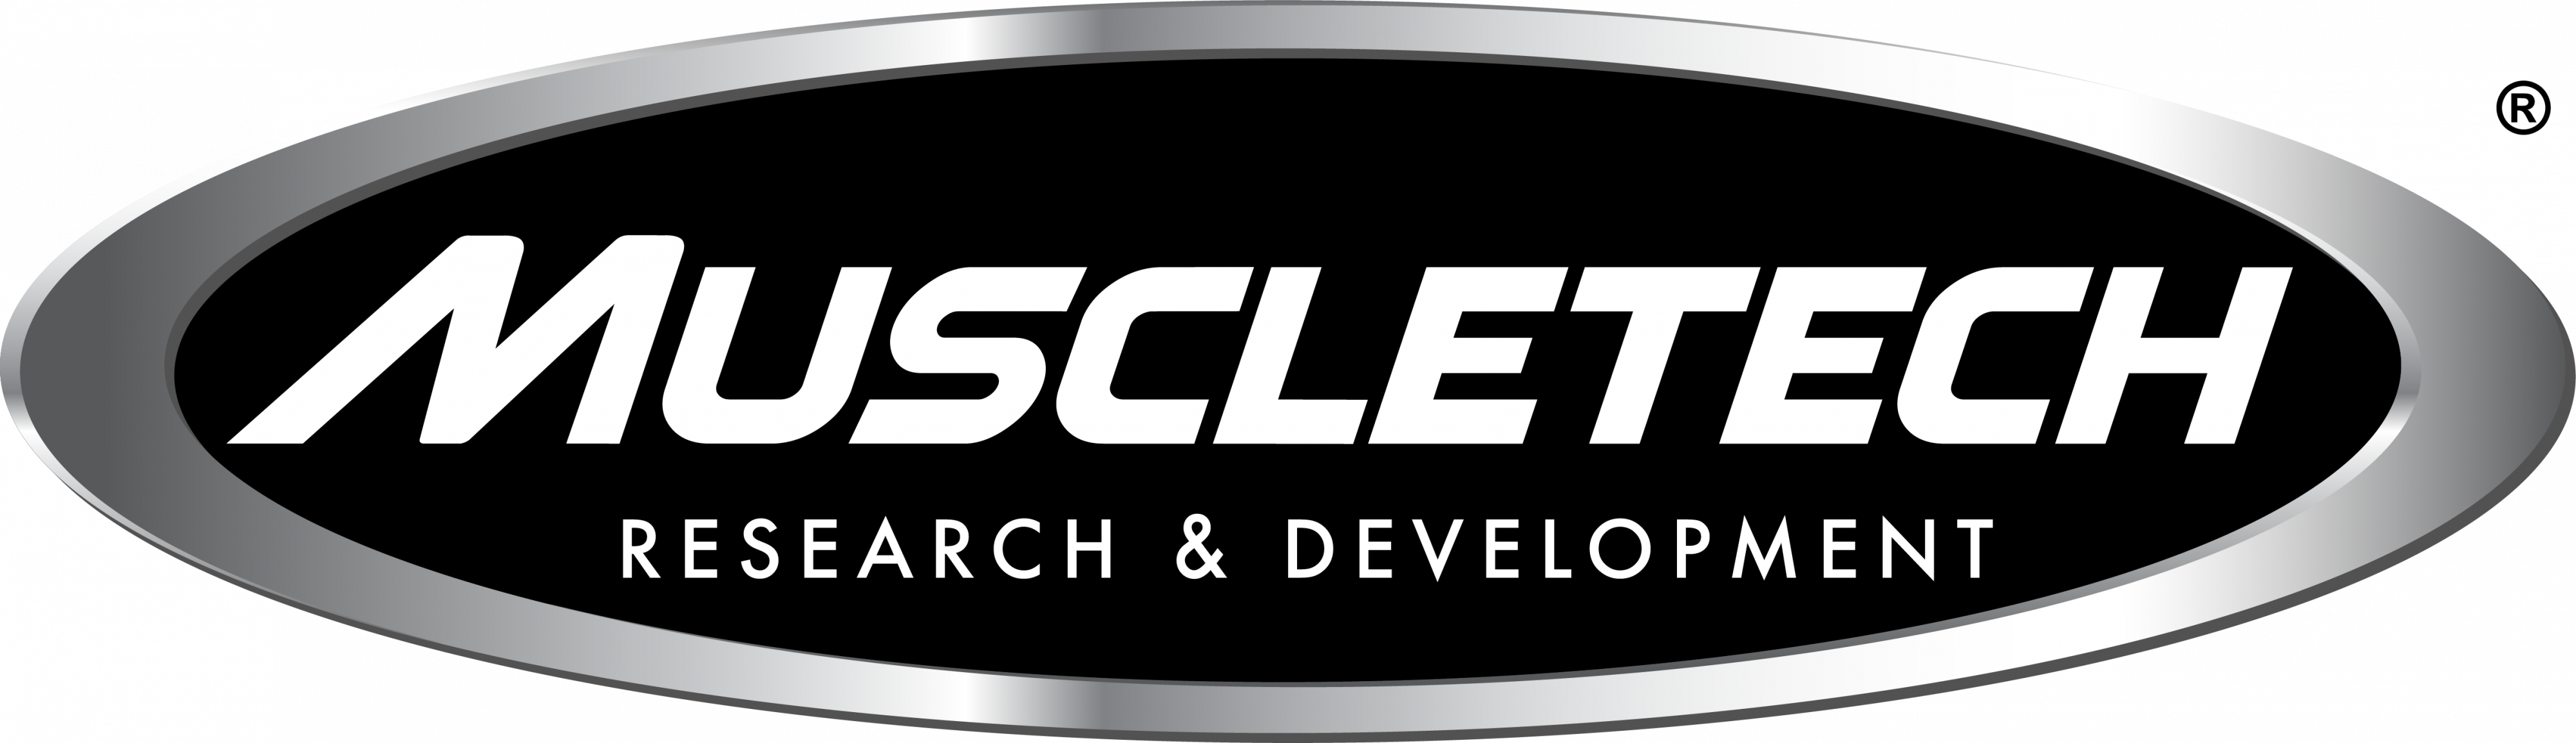 MuscleTech RESEARCH & DEVELOPMENT